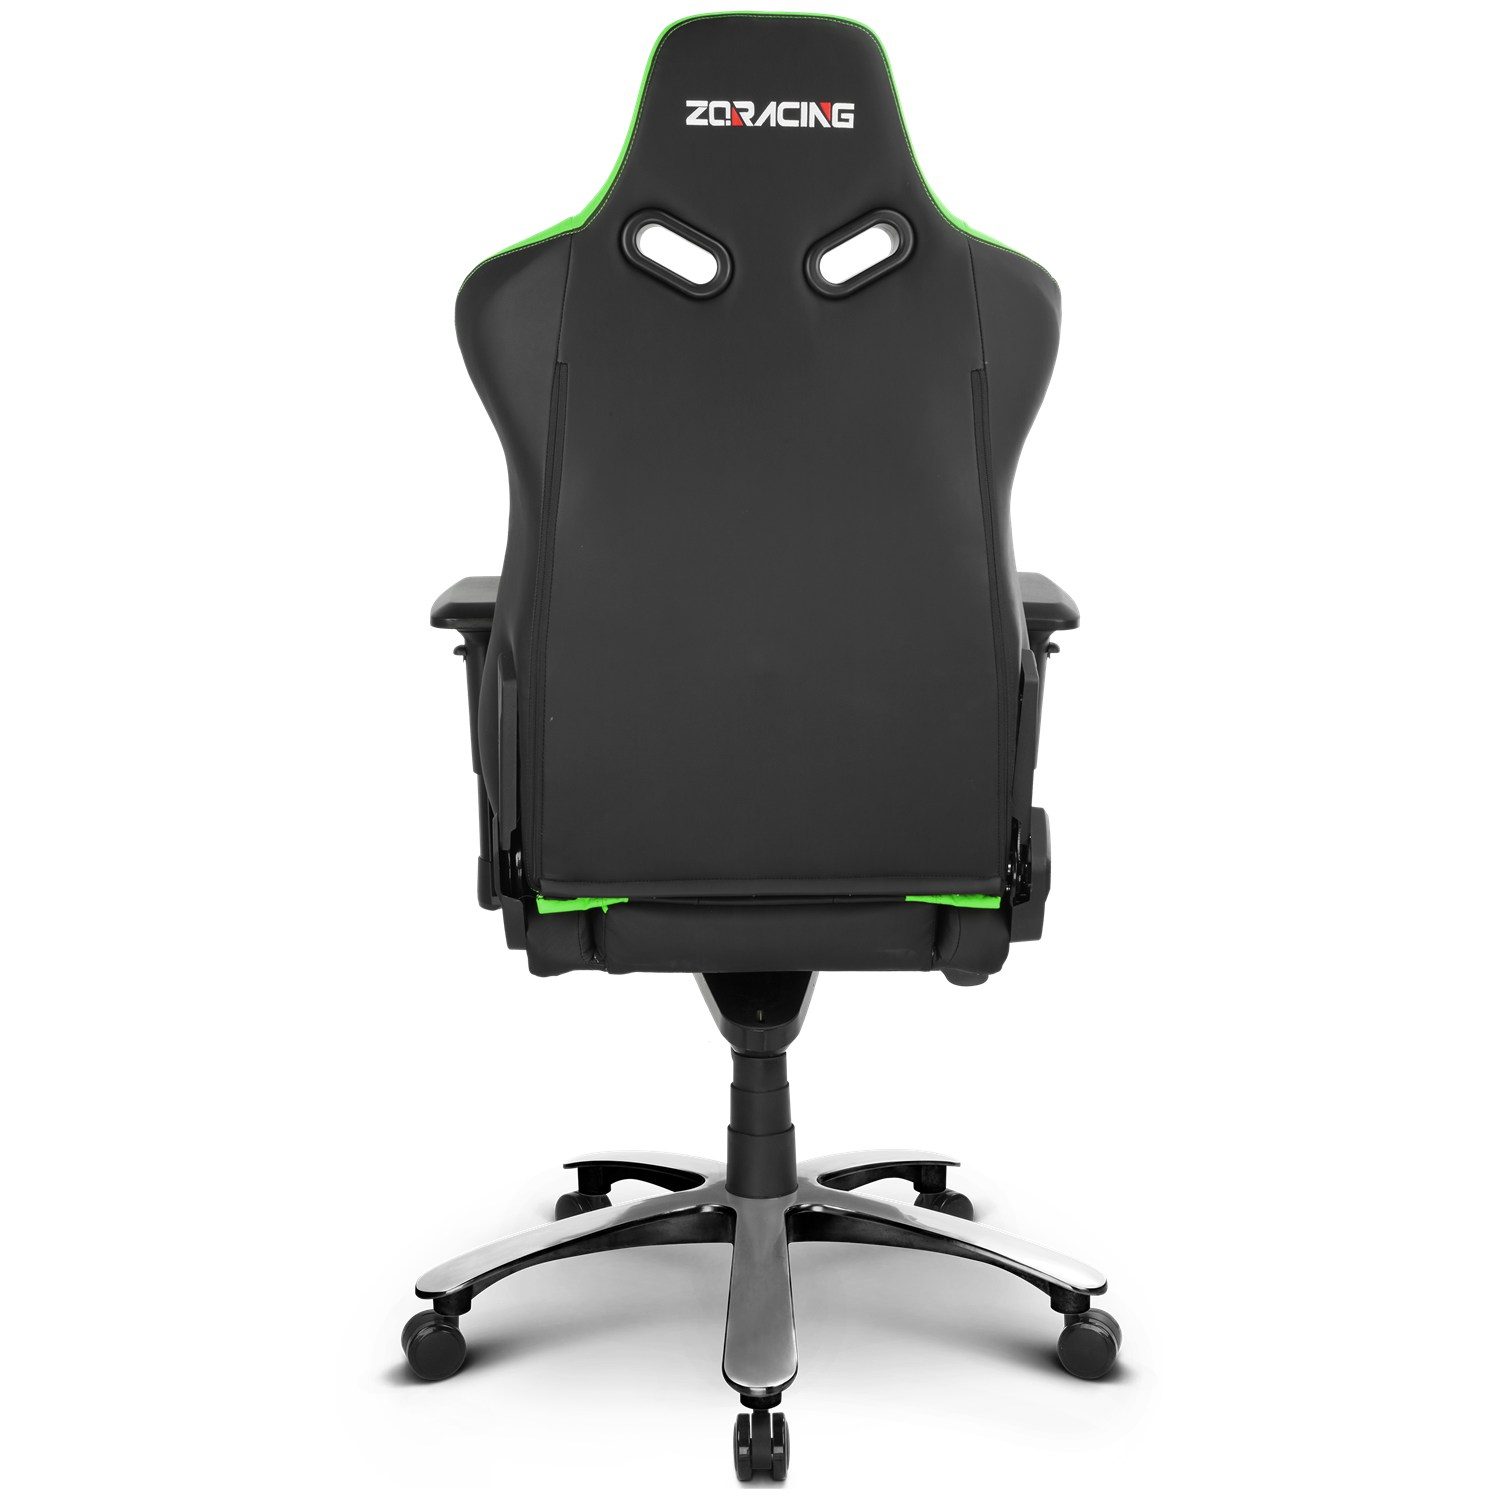 ZQRacing Alien XL Series Gaming fice Chair Green Black [In Stock